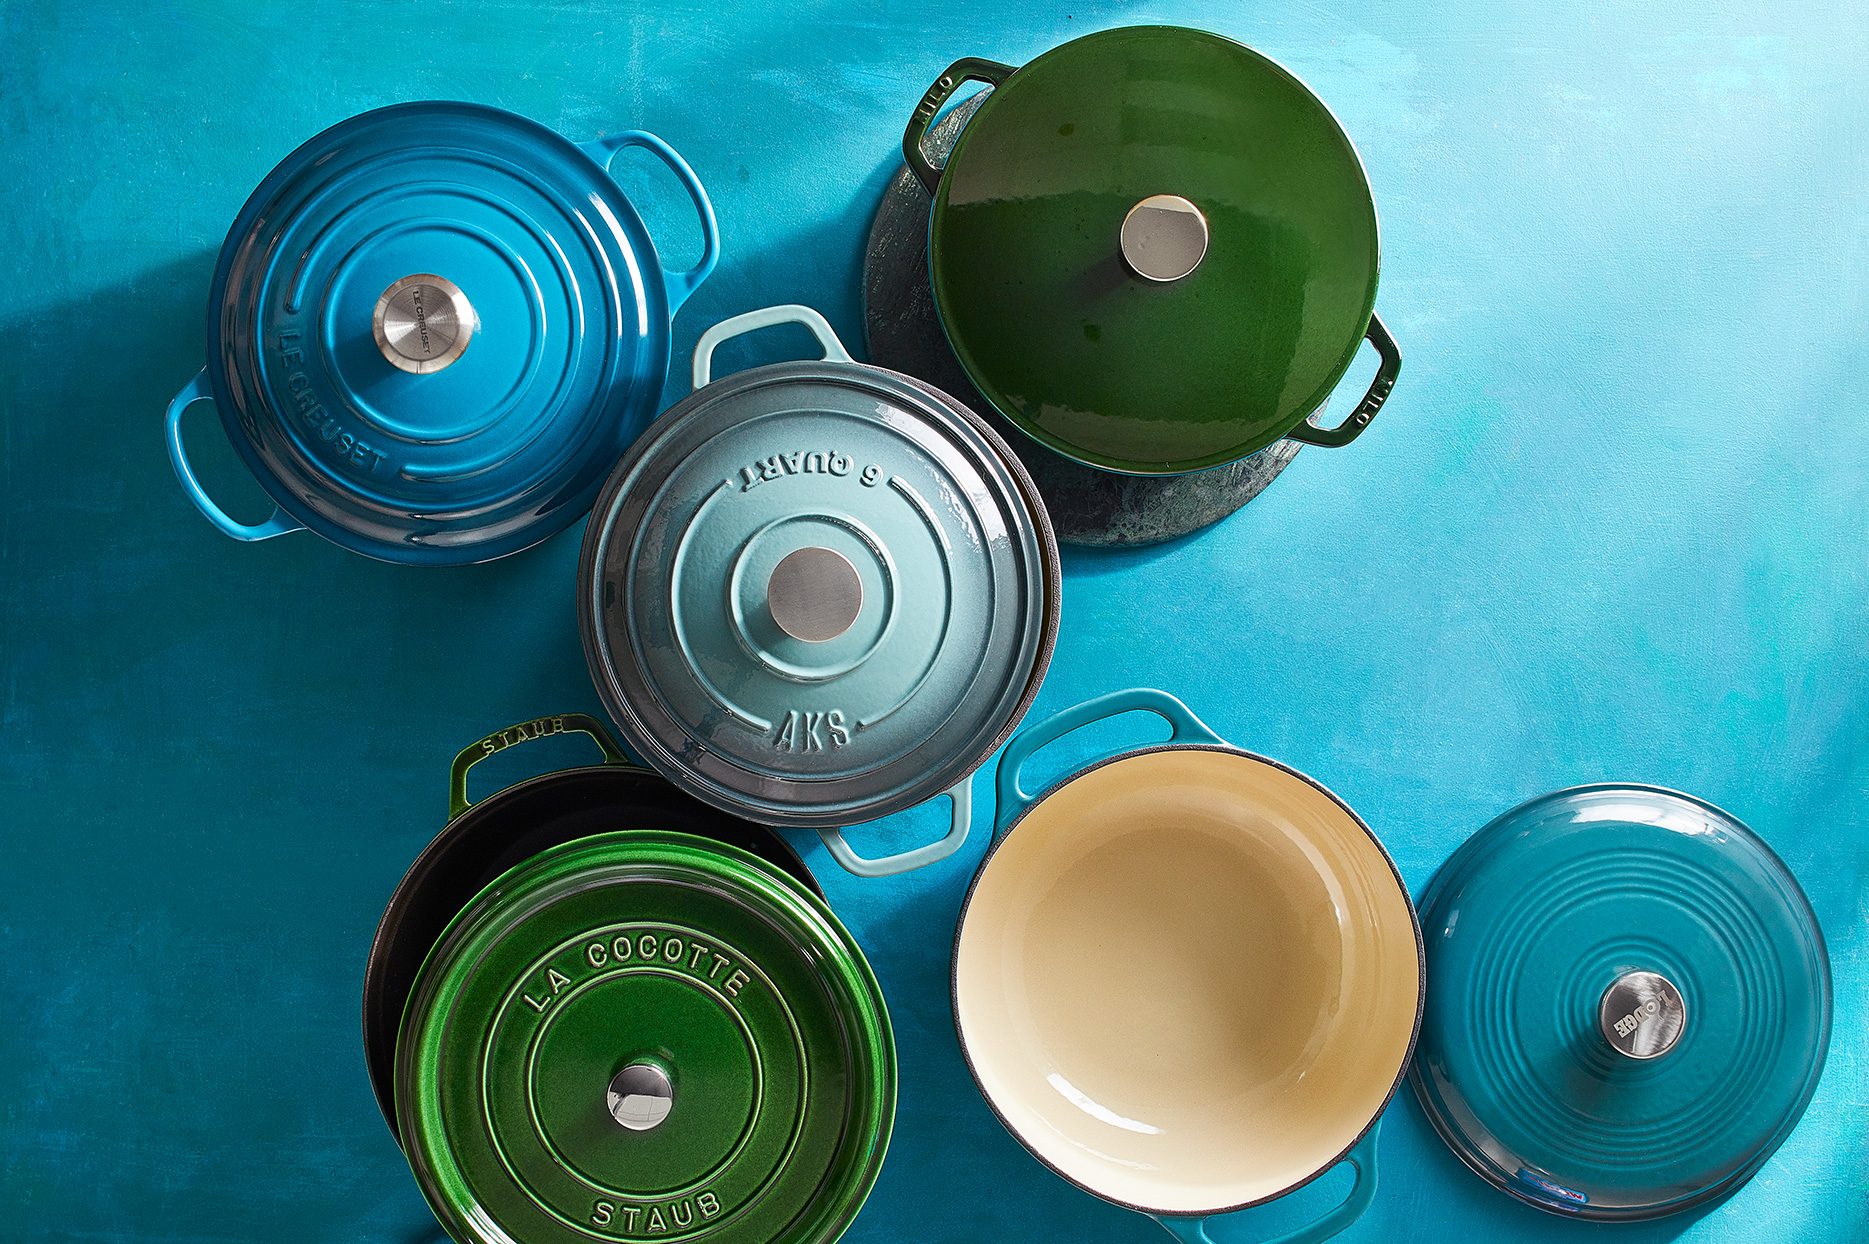 Blue and green Dutch ovens